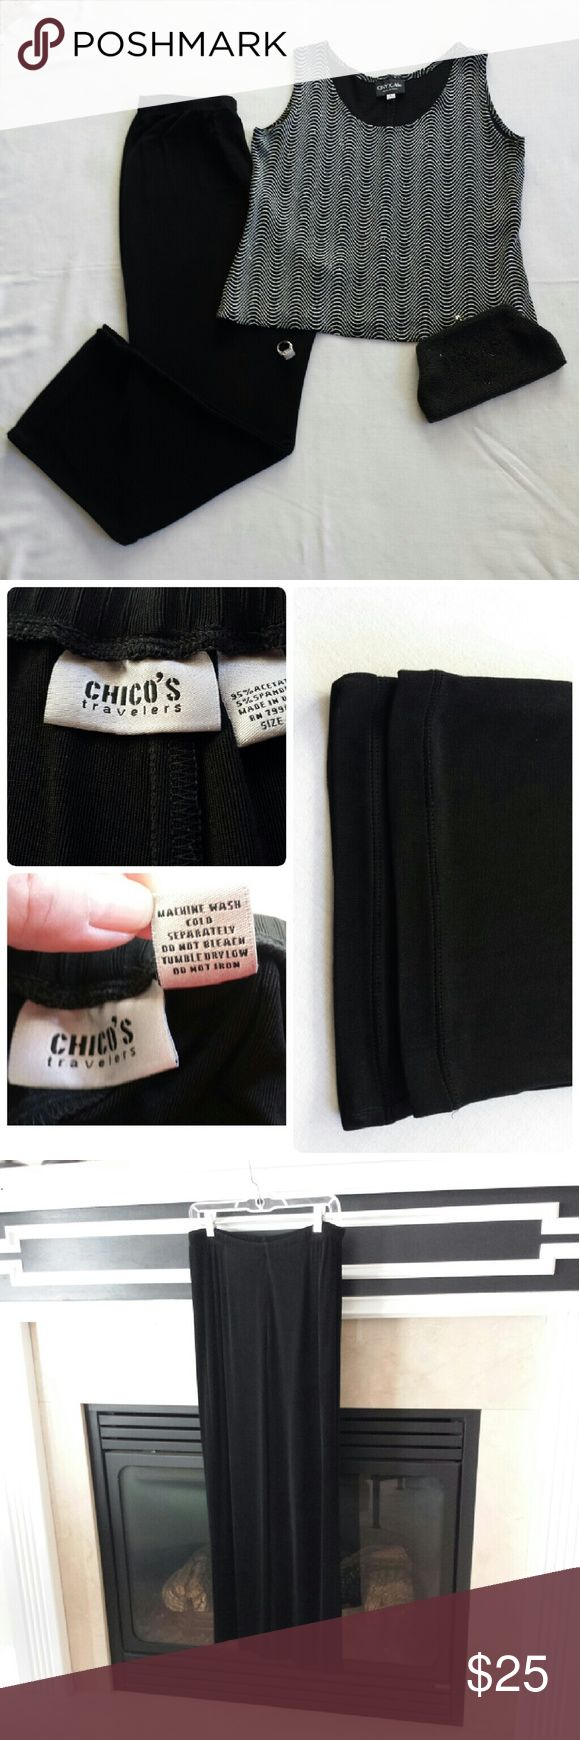 "Chico's Dressy Pants  Size 2 EUC Part of Chico's Travelers Line. Extremely comfortable, easy to wash, dress up or down. There is a shimmery effect to the material, and that is why I consider them dressy. The waist measures 14"" W, but stretches another 8 to 10 "". 26"" inseam, 12"" rise. Smoke free and fragrance free home. Reasonable offers,  only, please. Chico's Pants Boot Cut & Flare"